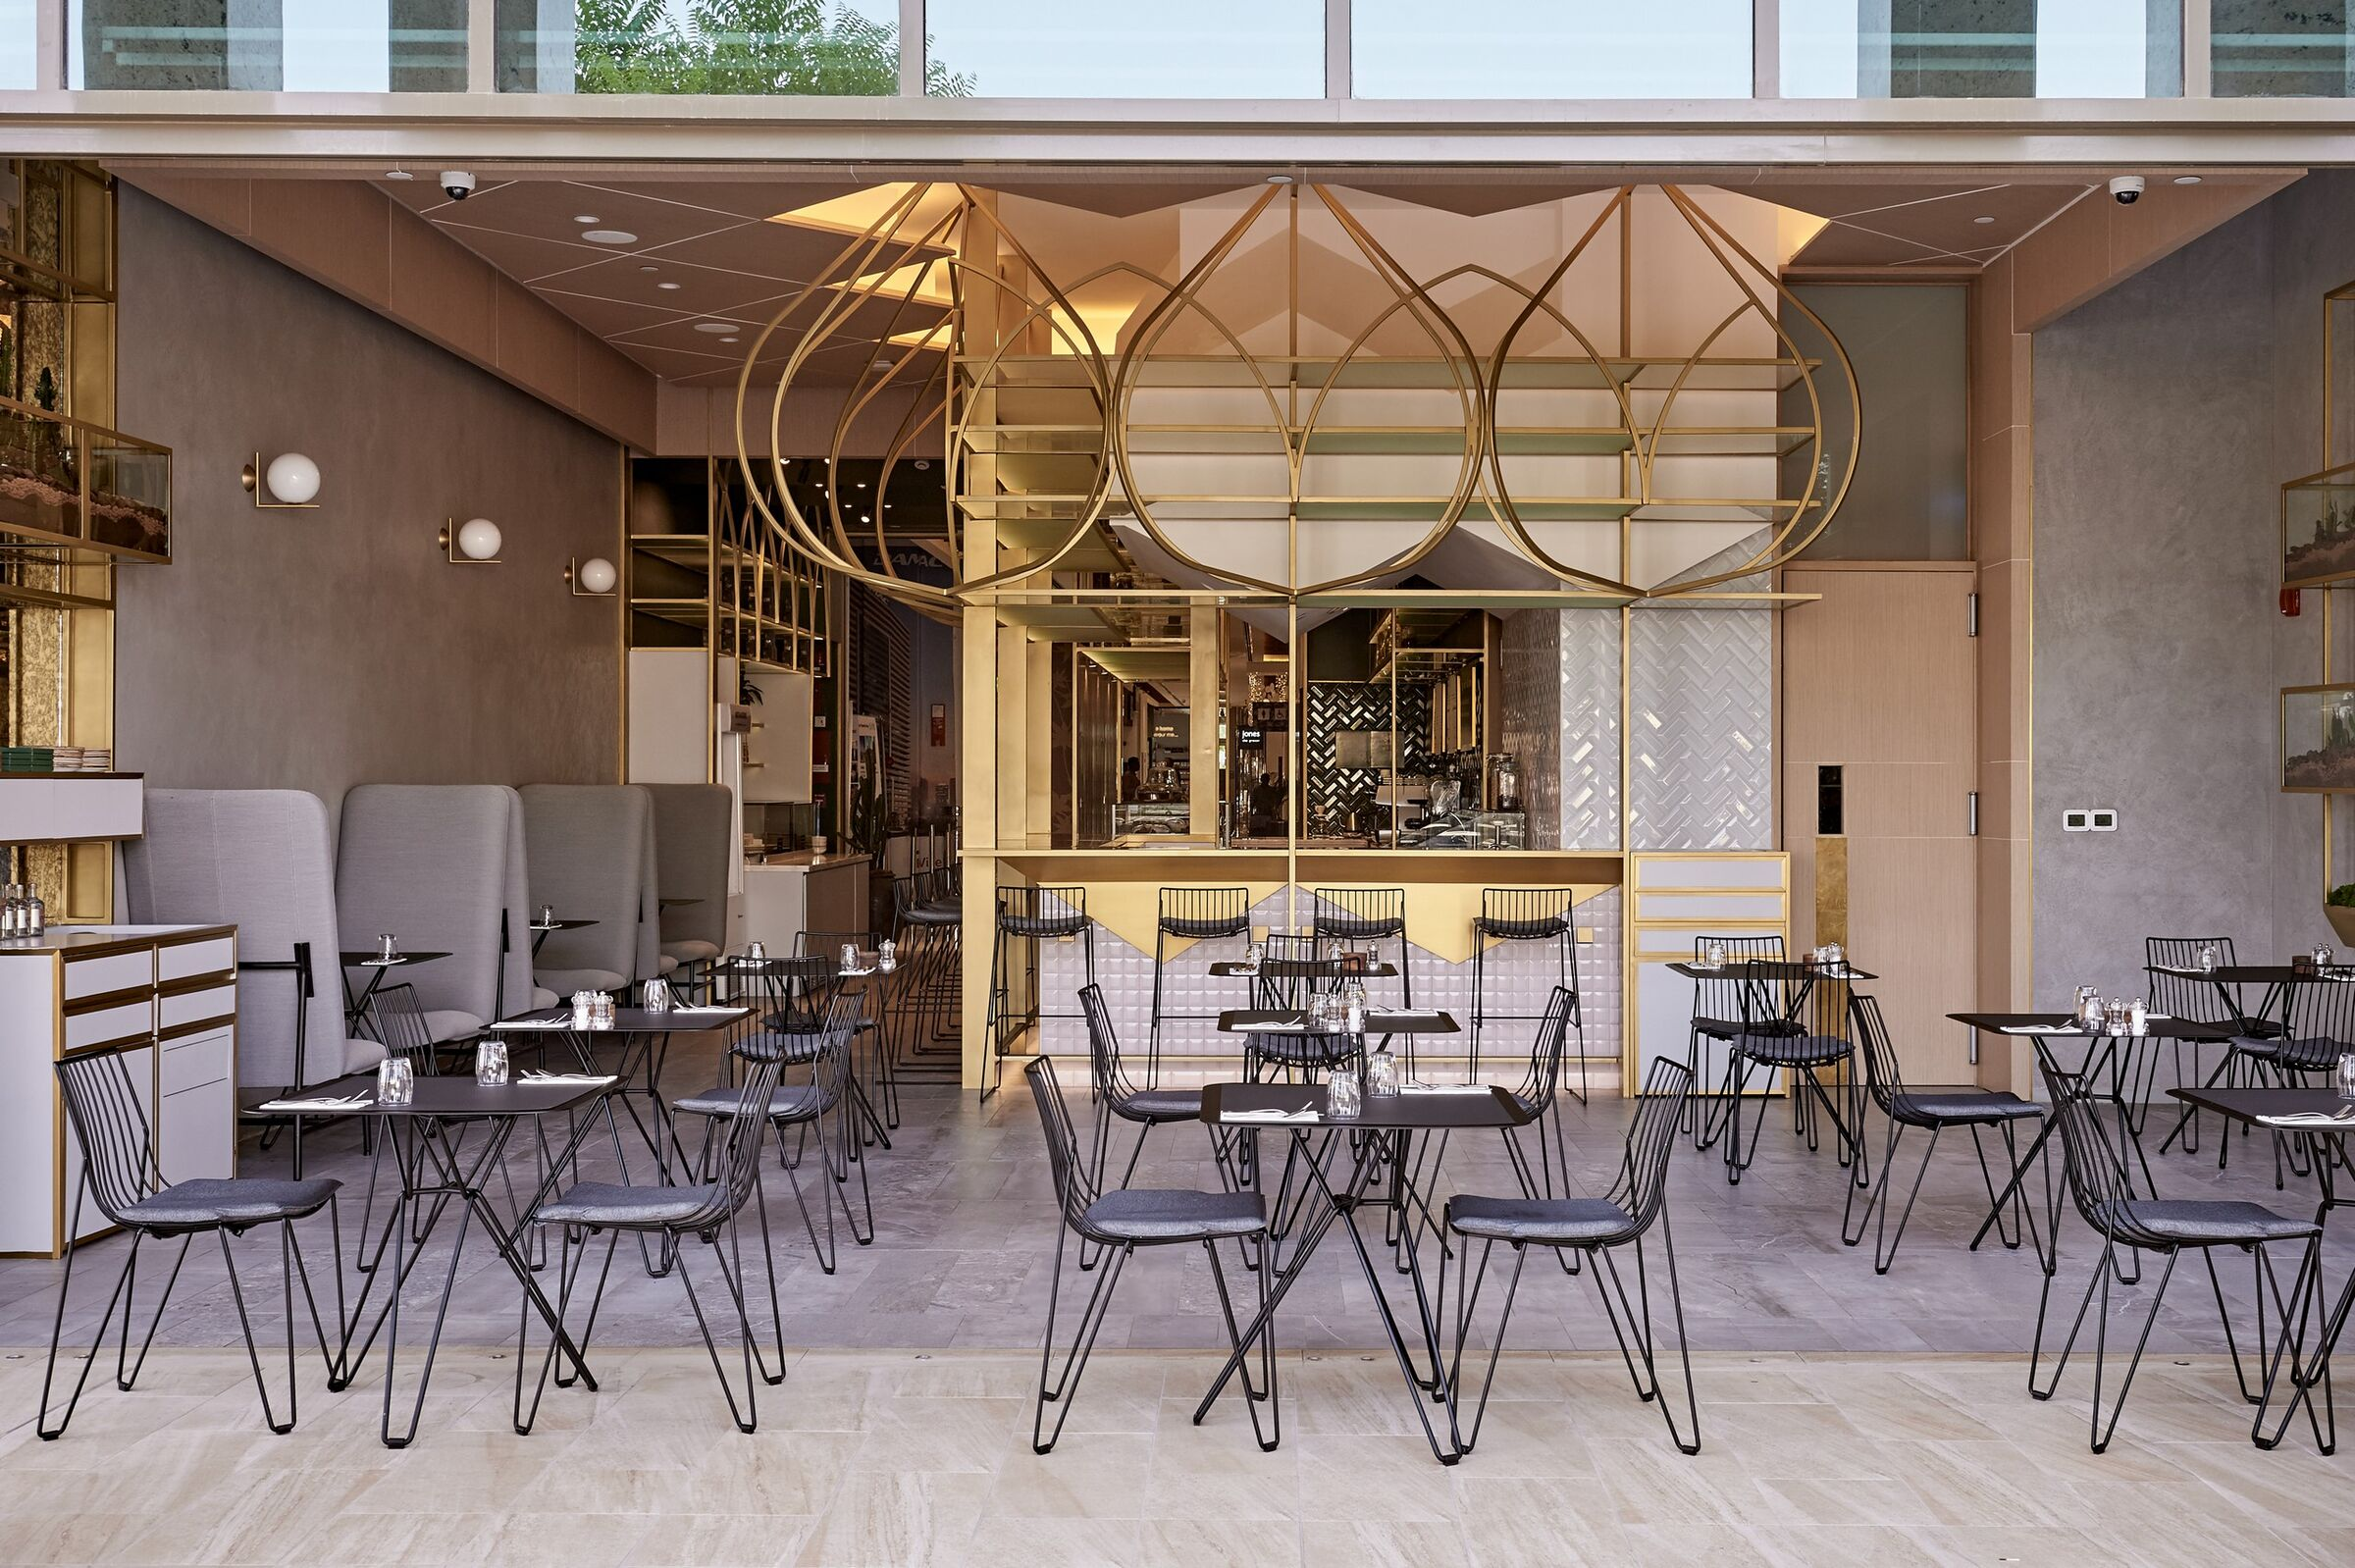 Menagerie Eatery  Binchy and Binchy Architecture  Archello